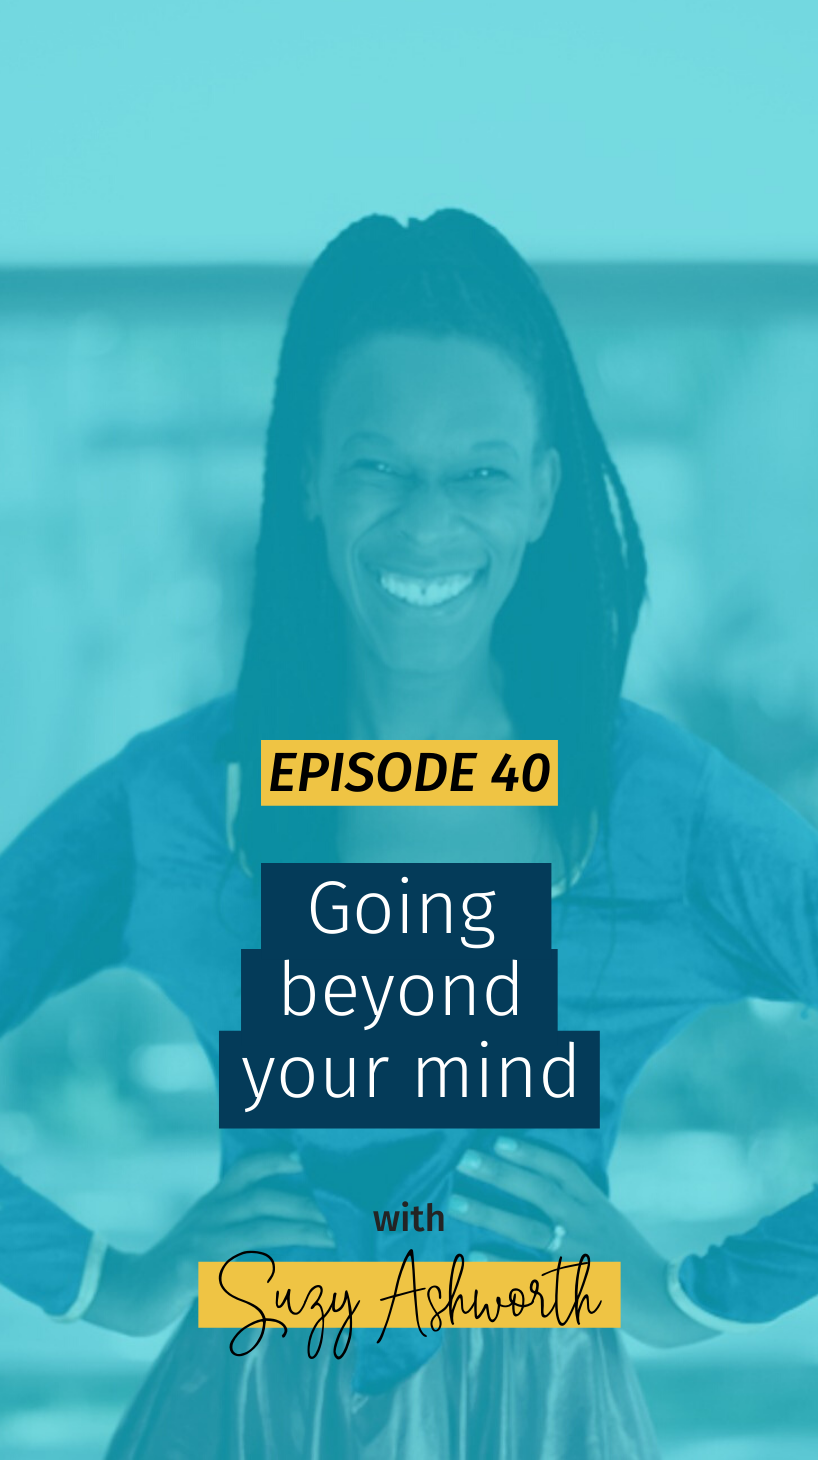 040 Going beyond your mind